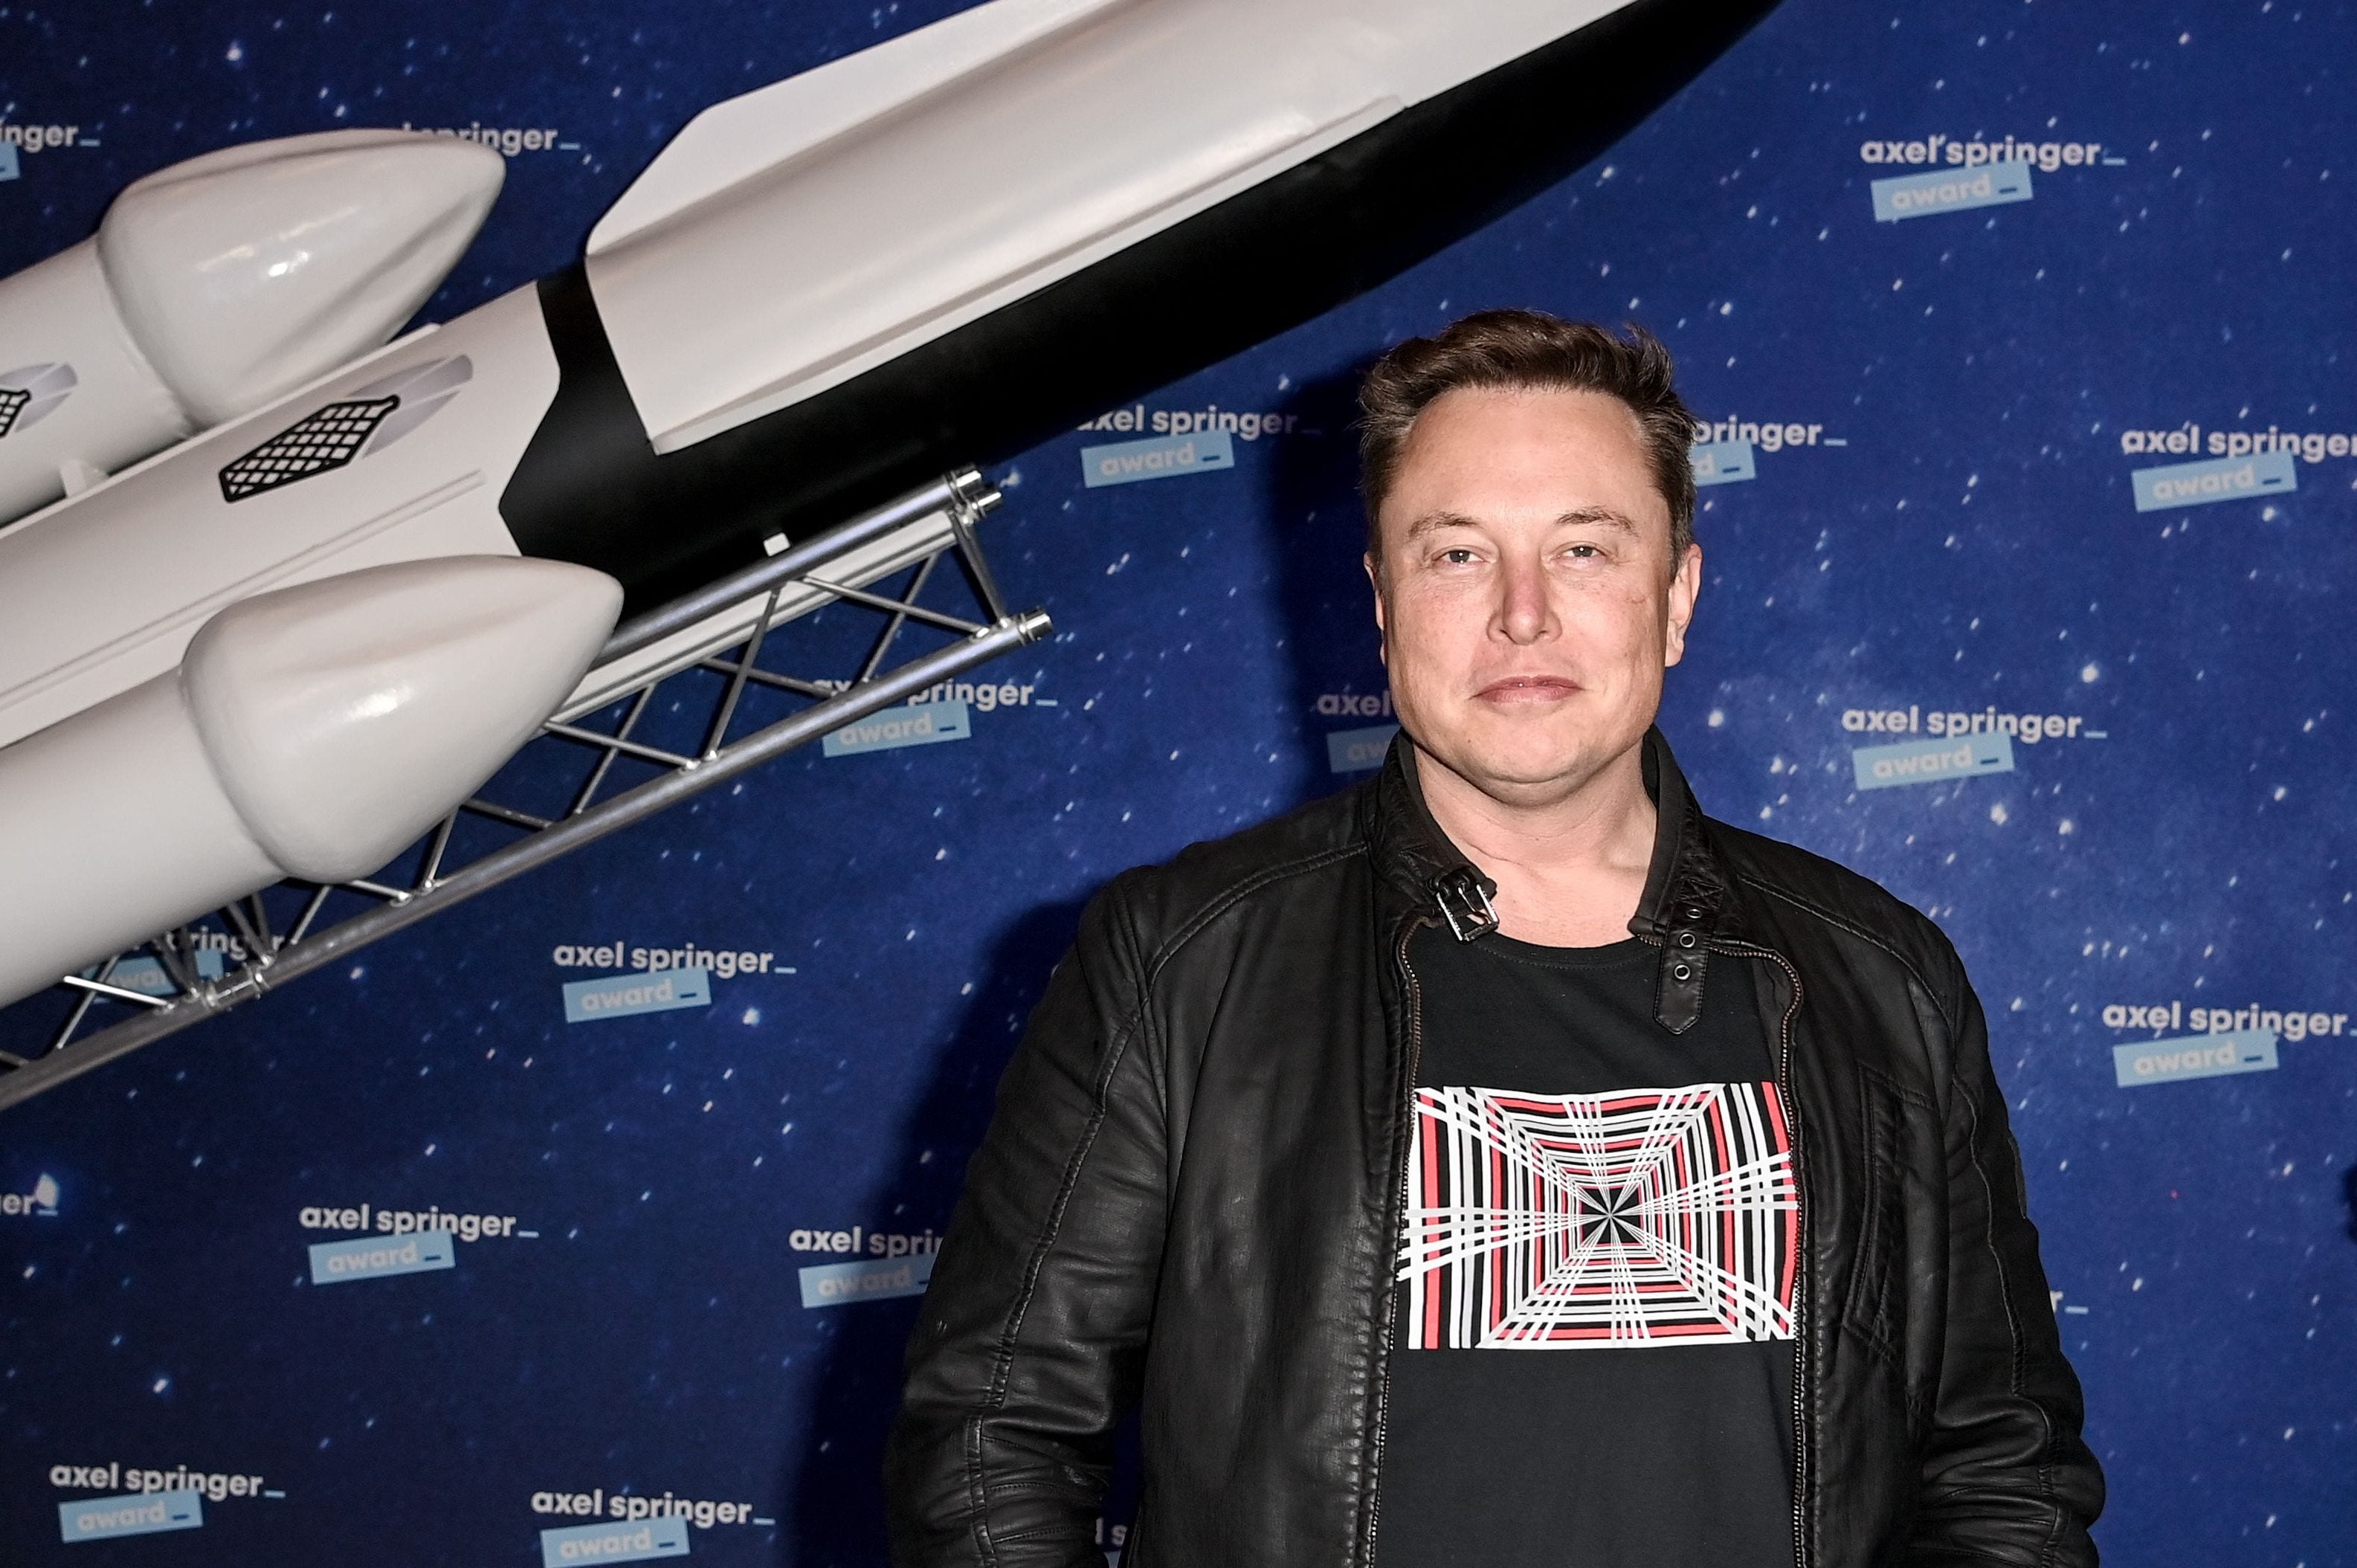 HOW ELON MUSK BECAME SPACE'S TOP ENTREPRENEUR WITH SPACEX AND STARLINK